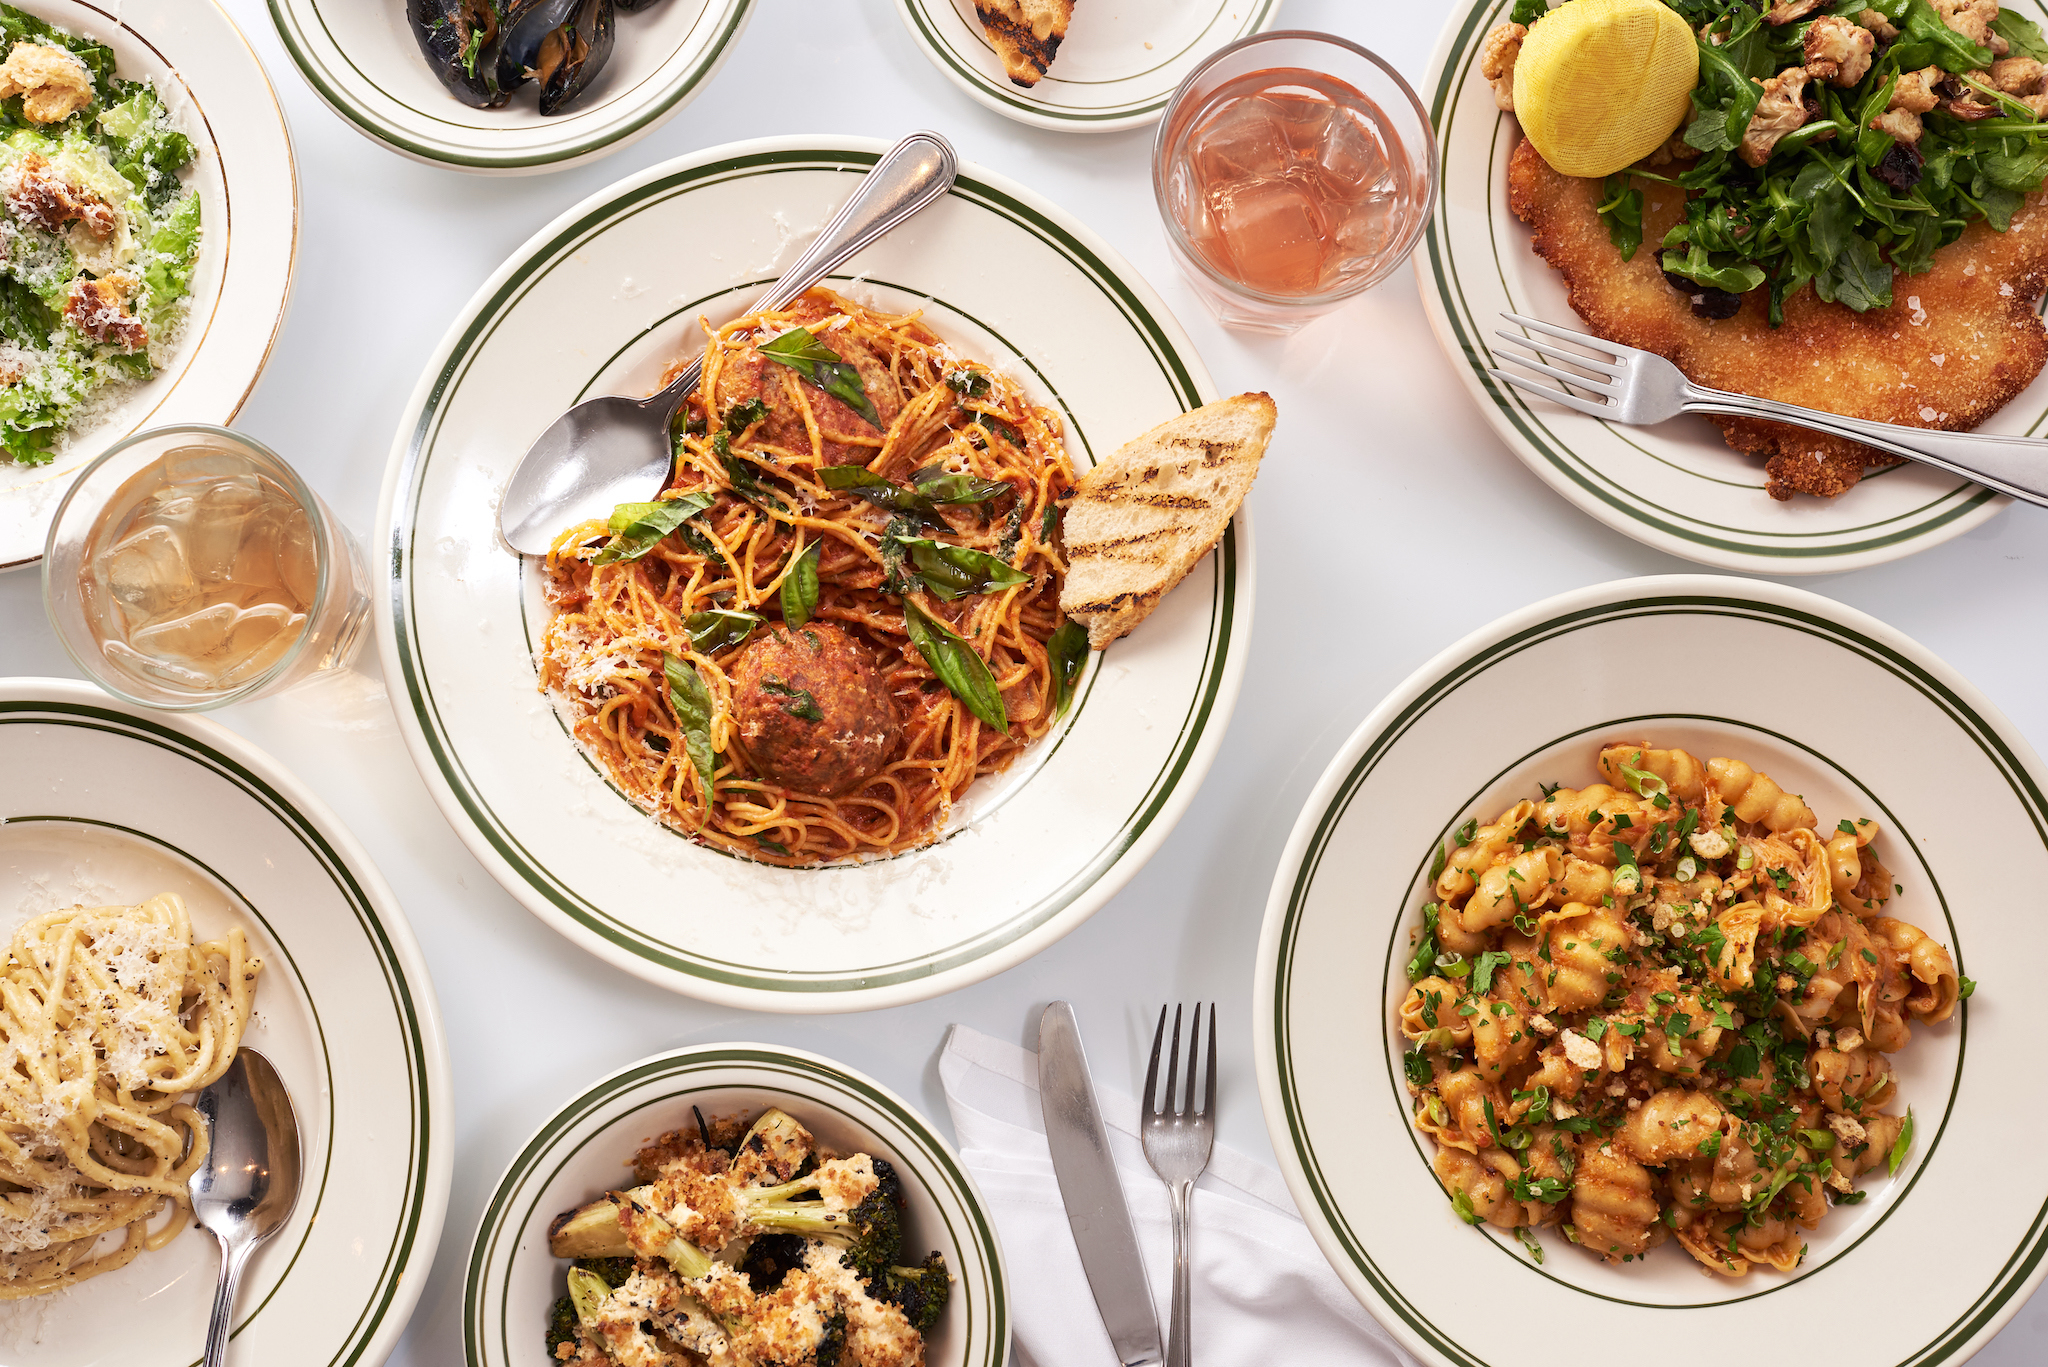 Check out some of the best new restaurants in Philly